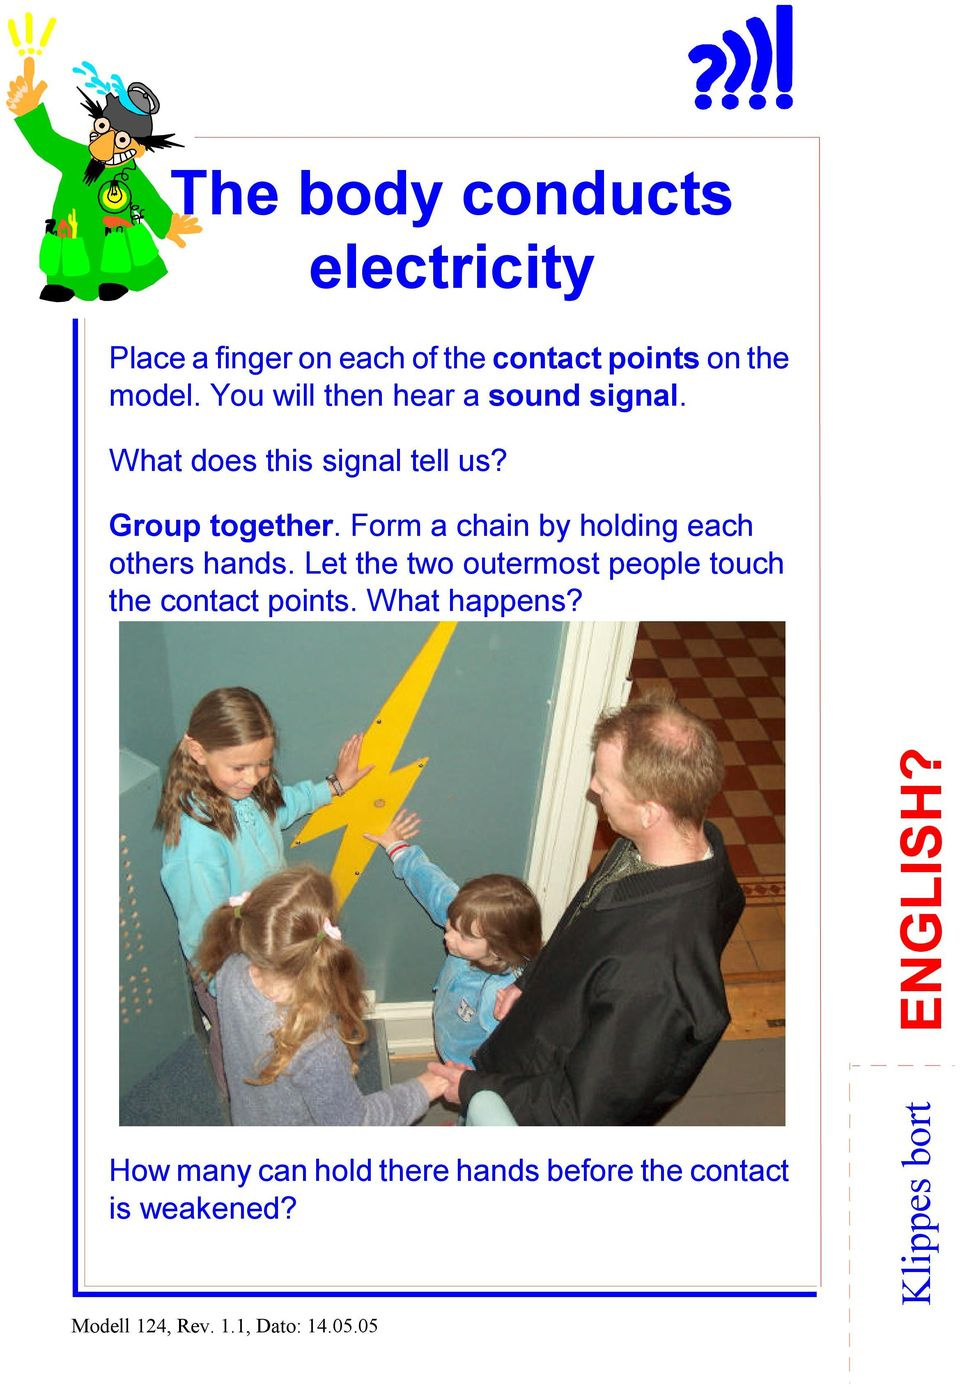 Form a chain by holding each others hands. Let the two outermost people touch the contact points.